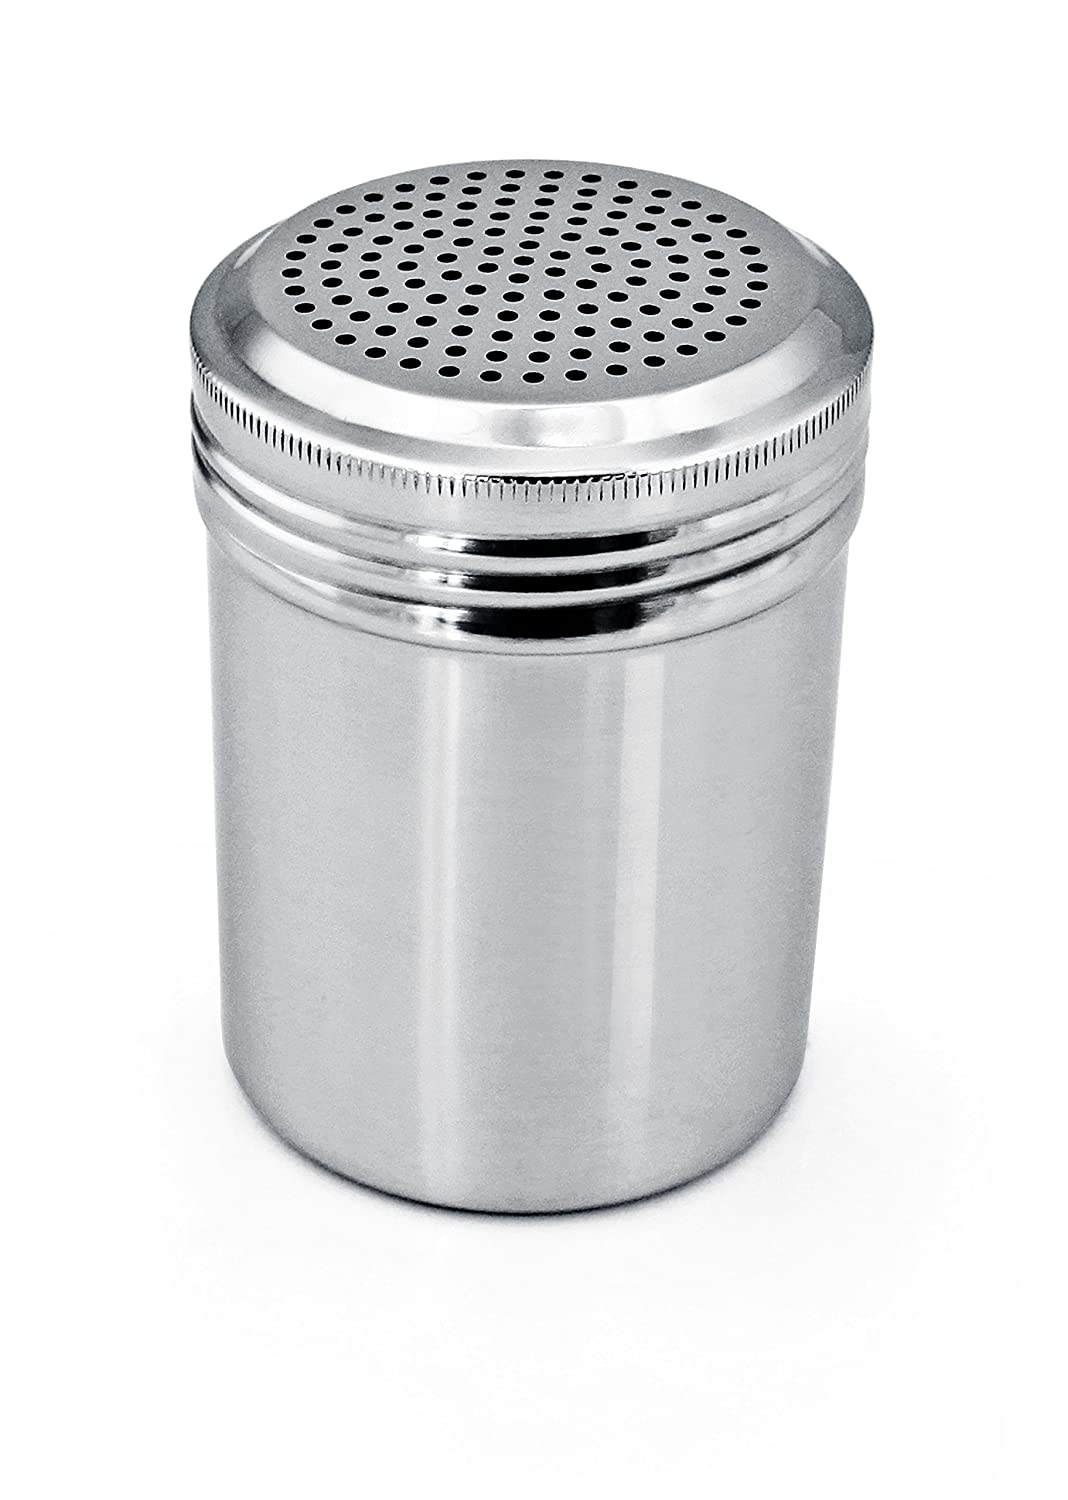 New Star Foodservice 28478 Stainless Steel Dredge Shaker, 10-Ounce, Set of 2